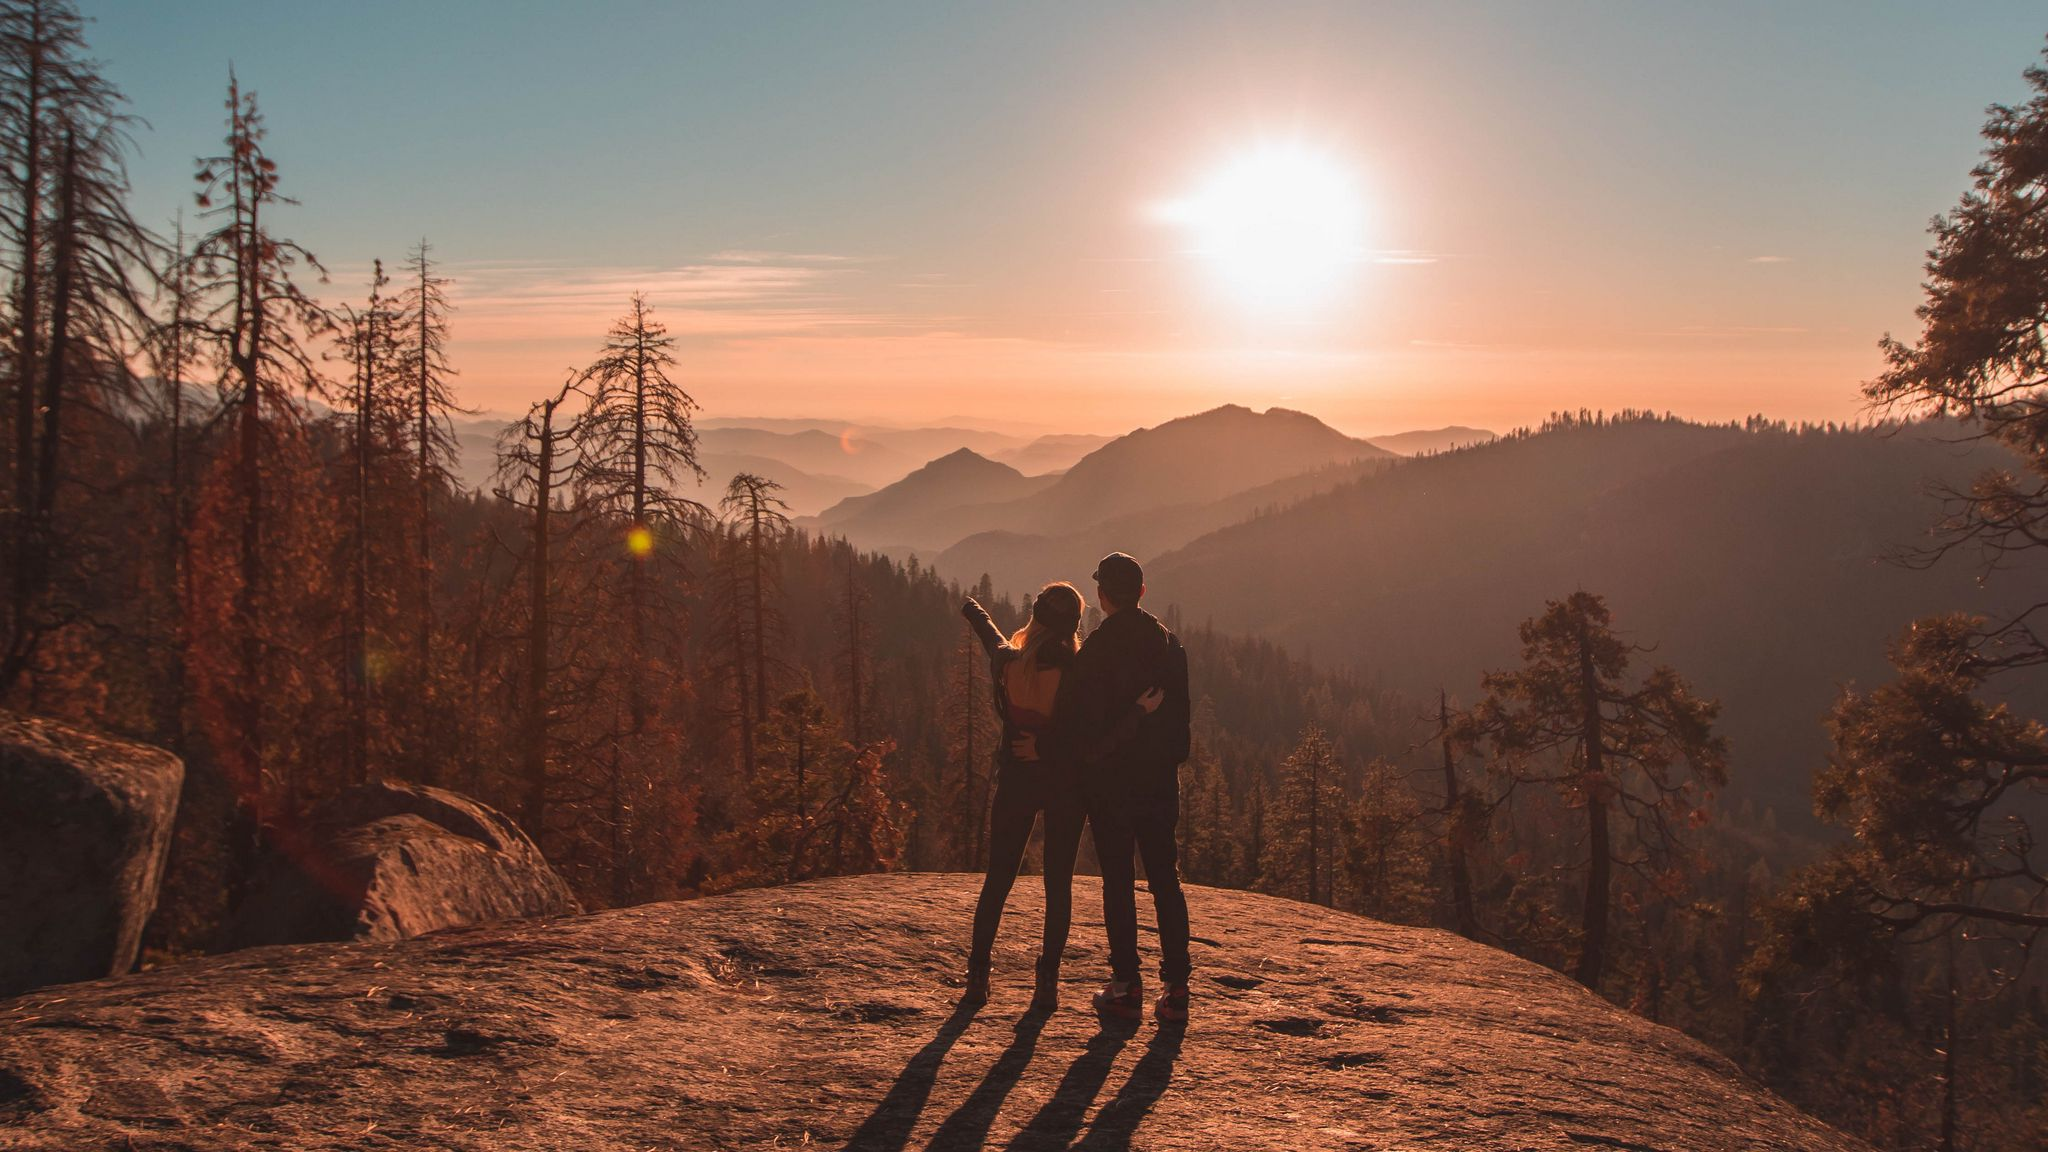 2048x1152 Wallpaper couple, mountains, travel, sunset, sequoia national park, united states